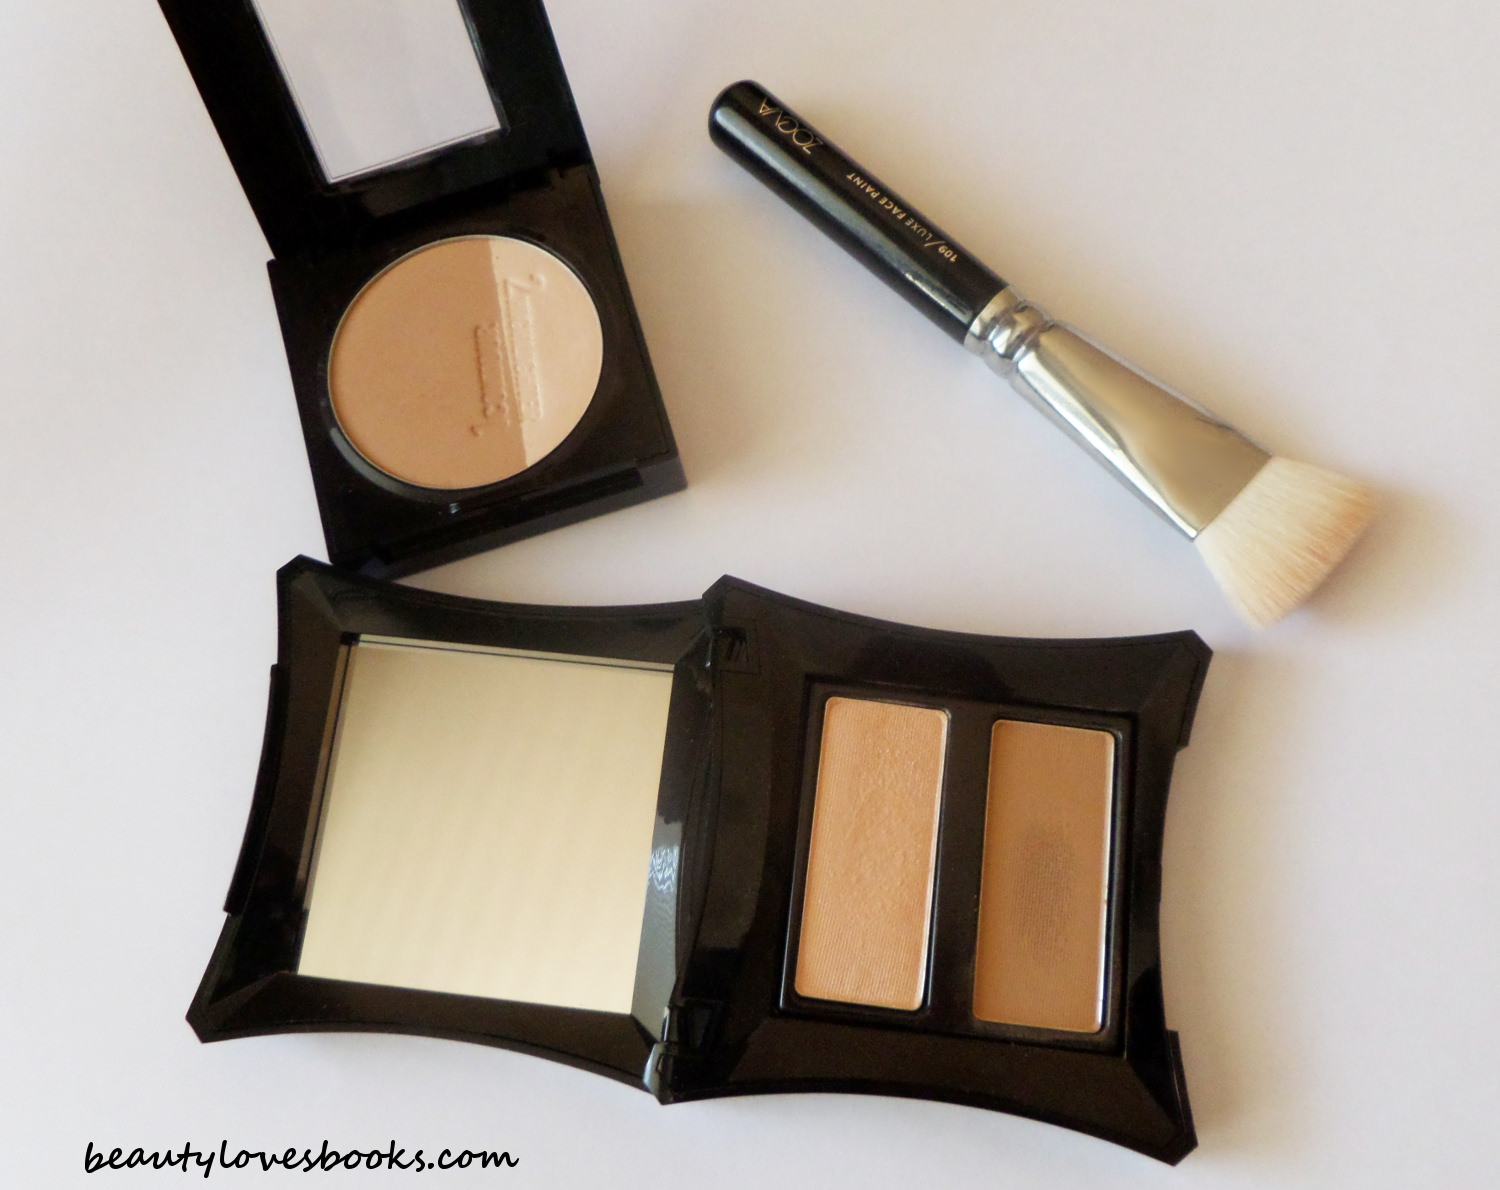 Maybelline Master Sculpt contouring palette and Illamasqua contouring duo